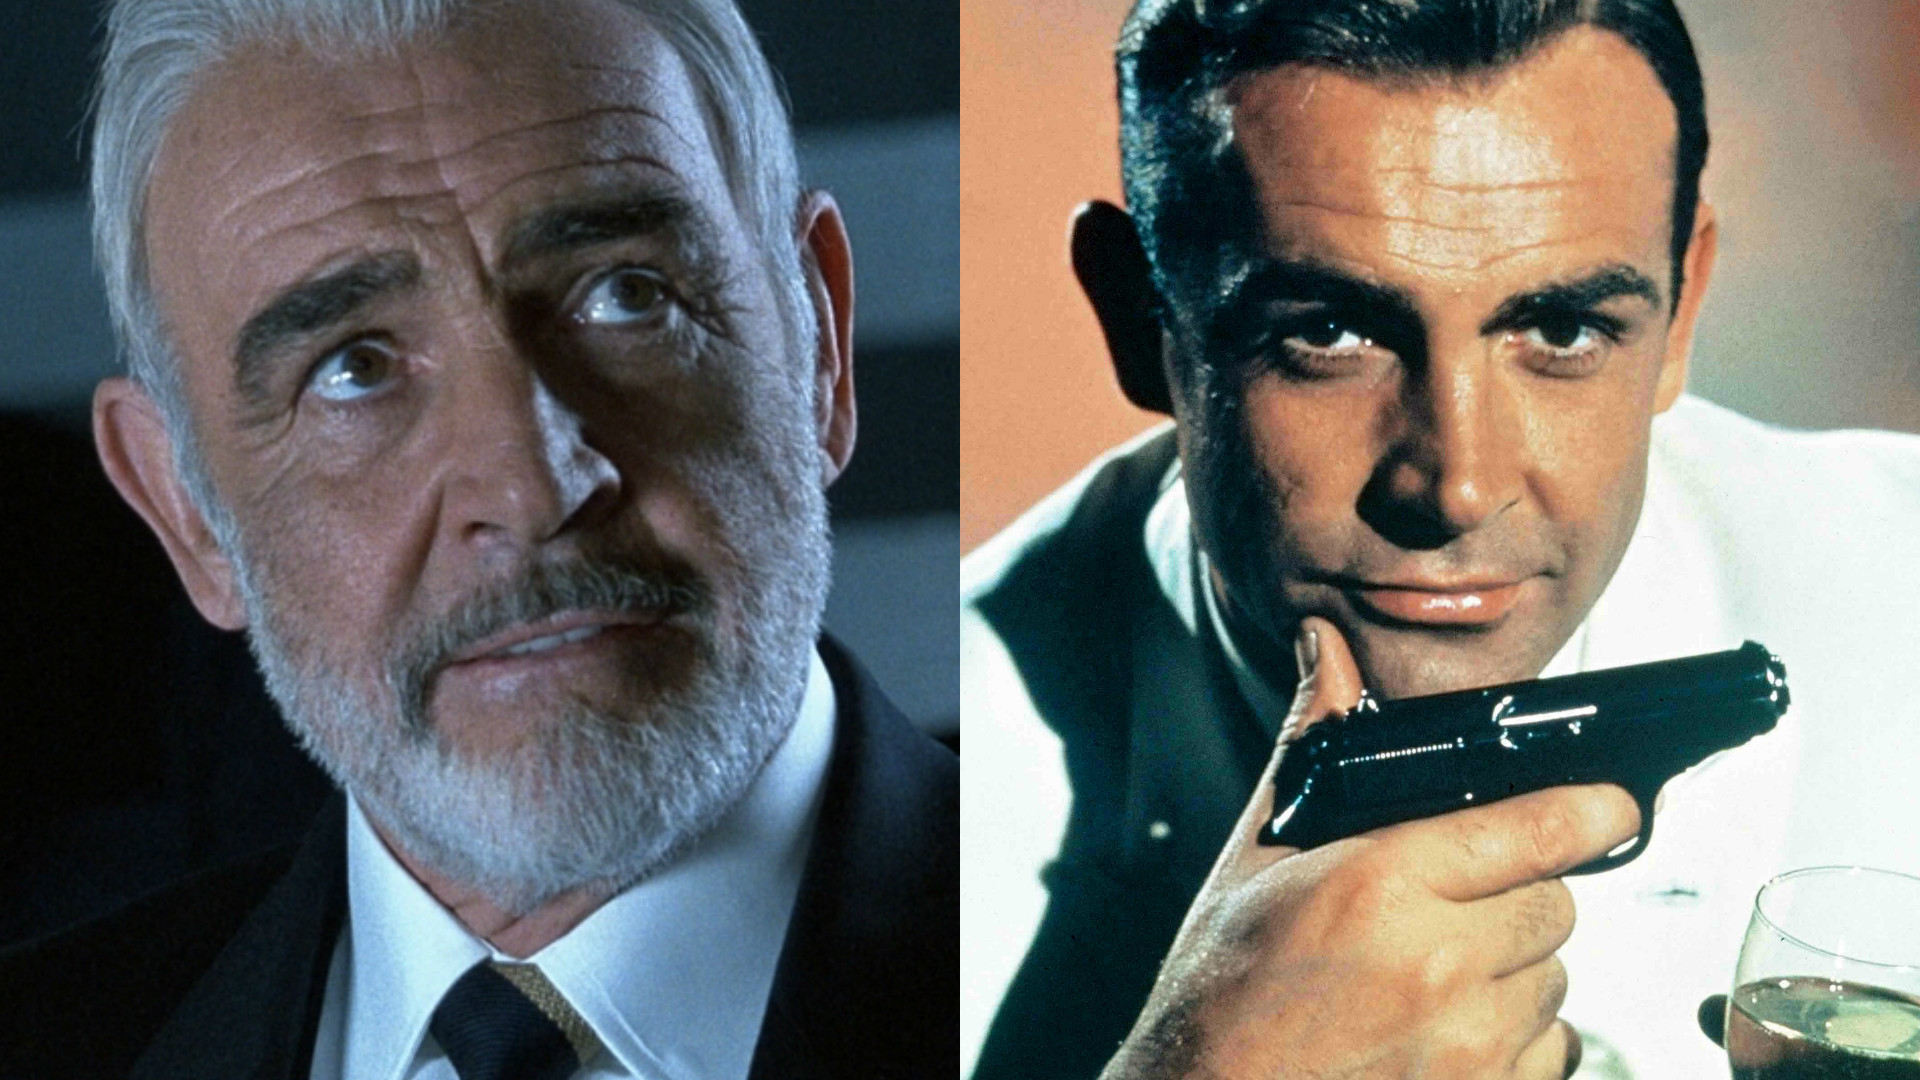 Sean Connery in The Rock and as James Bond